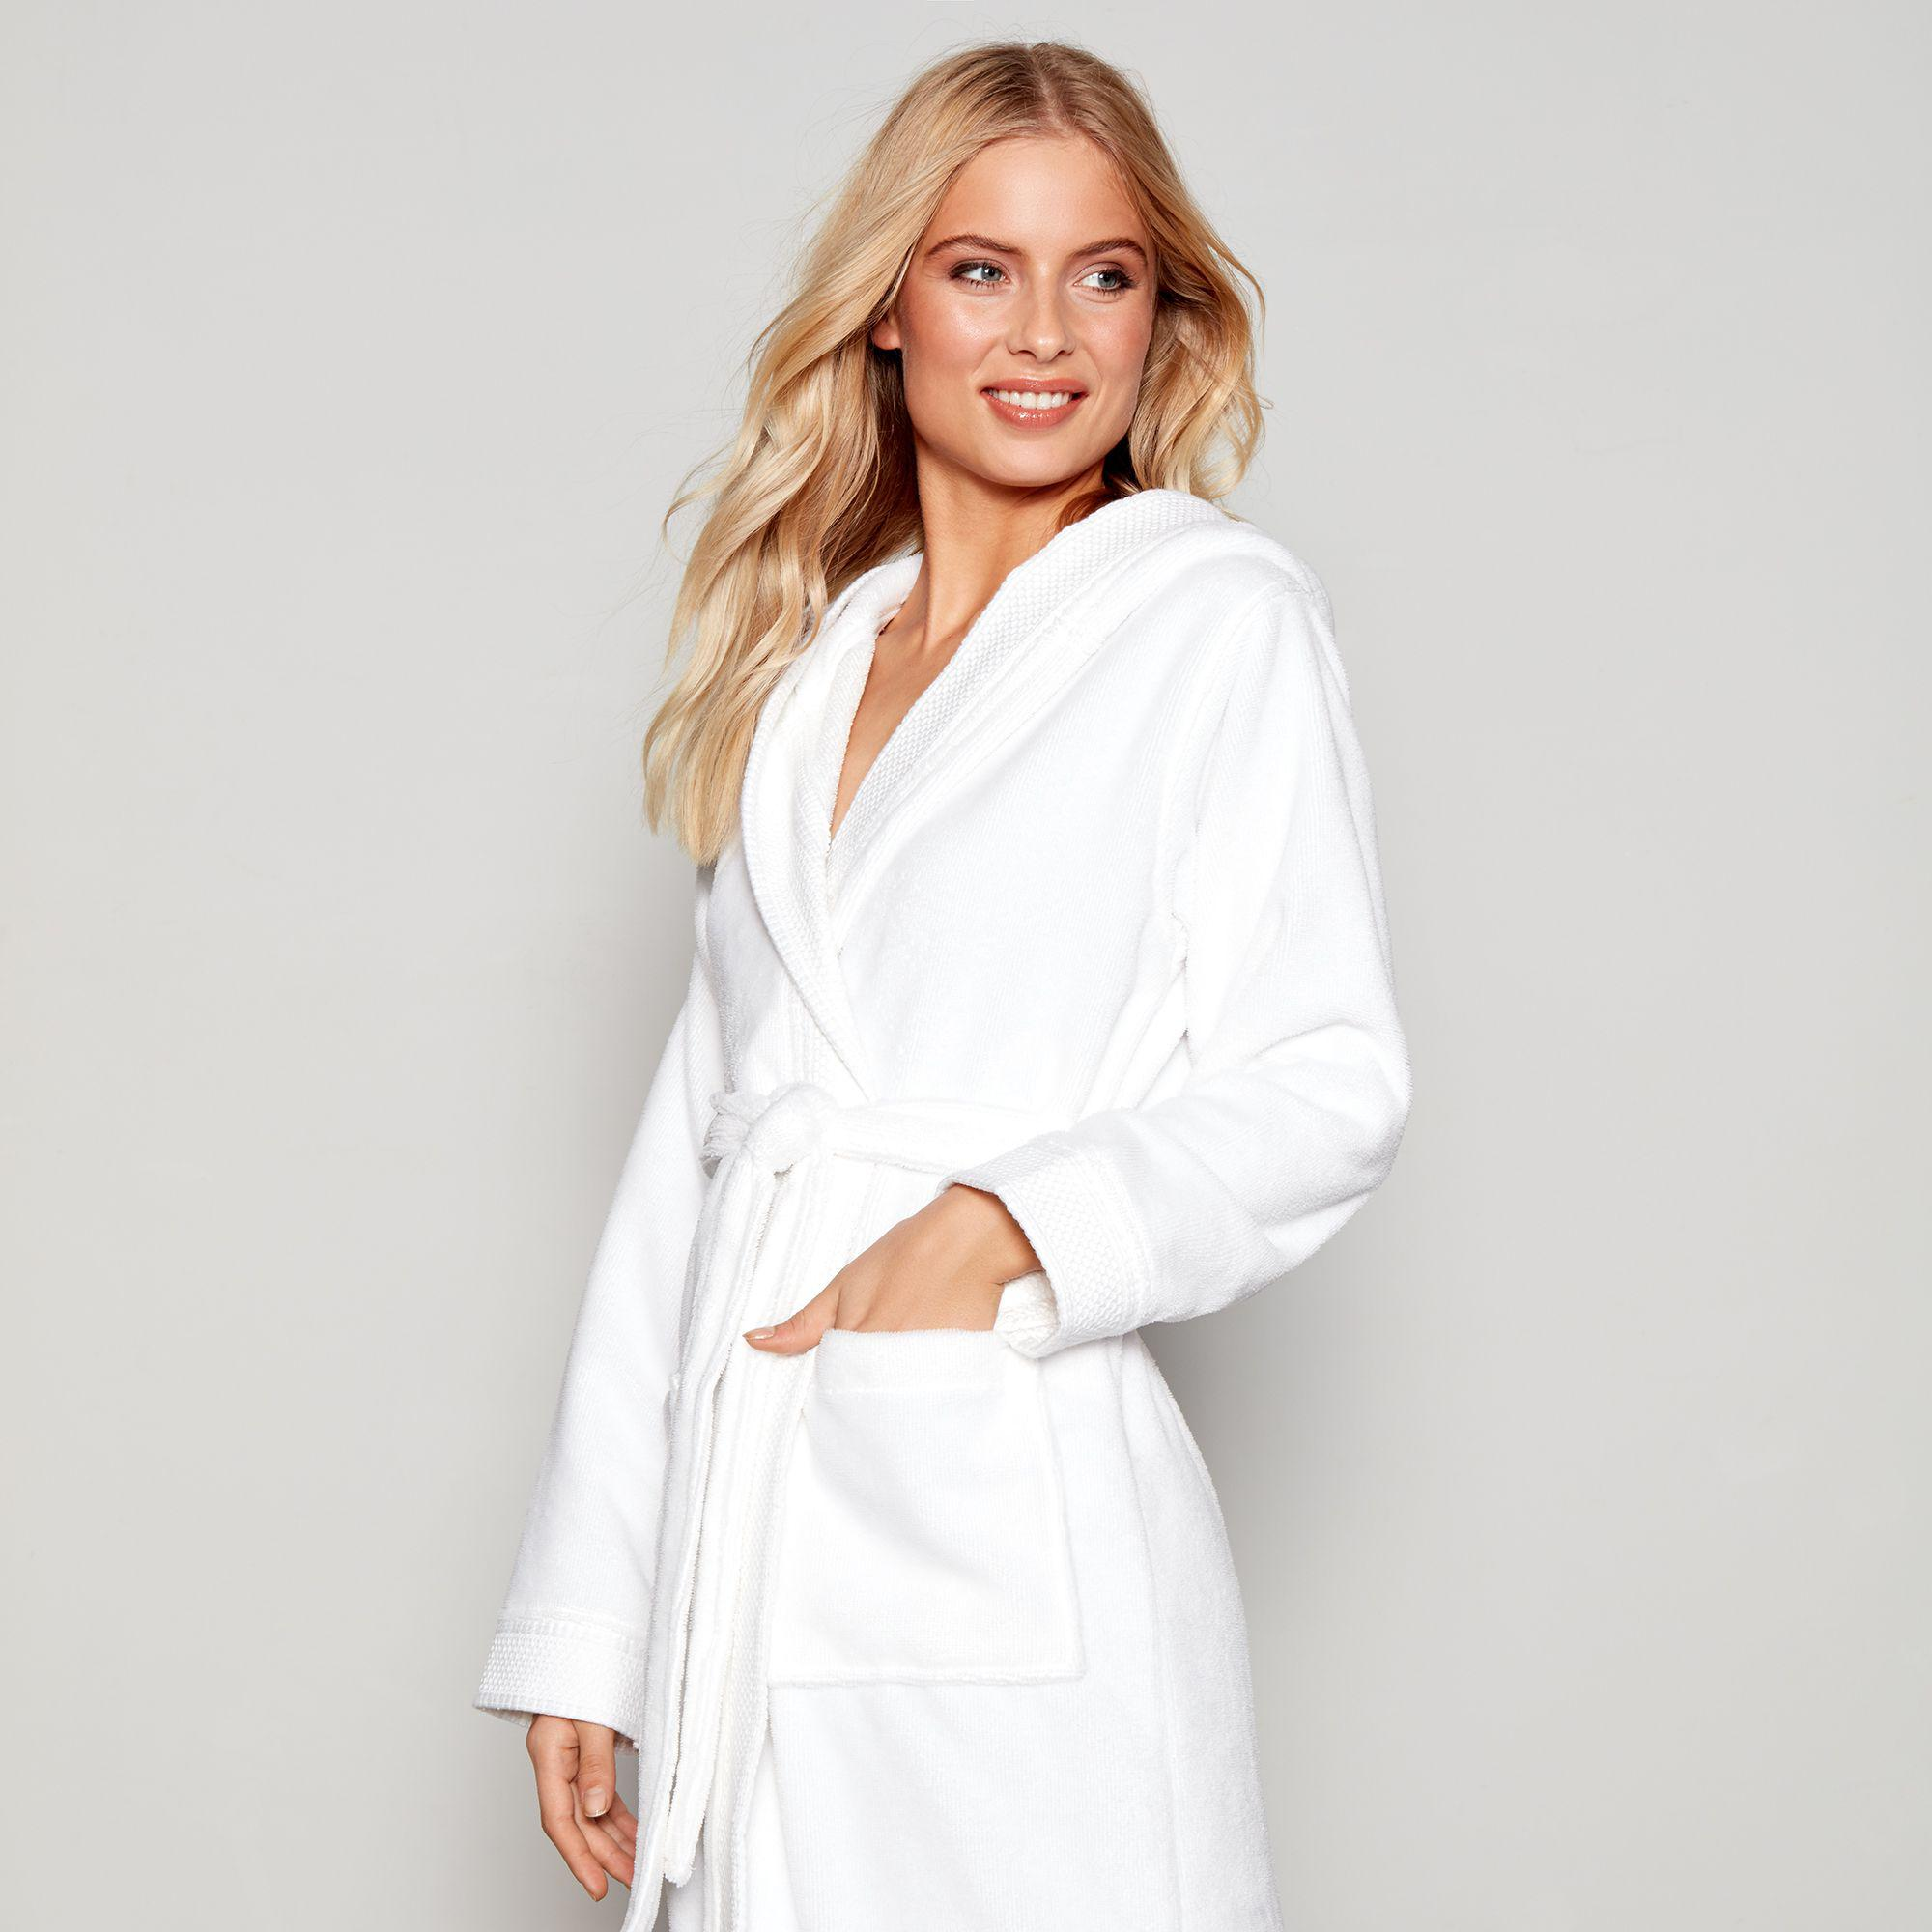 J By Jasper Conran White Towelling Hooded Dressing Gown in White - Lyst 4d70a71e2